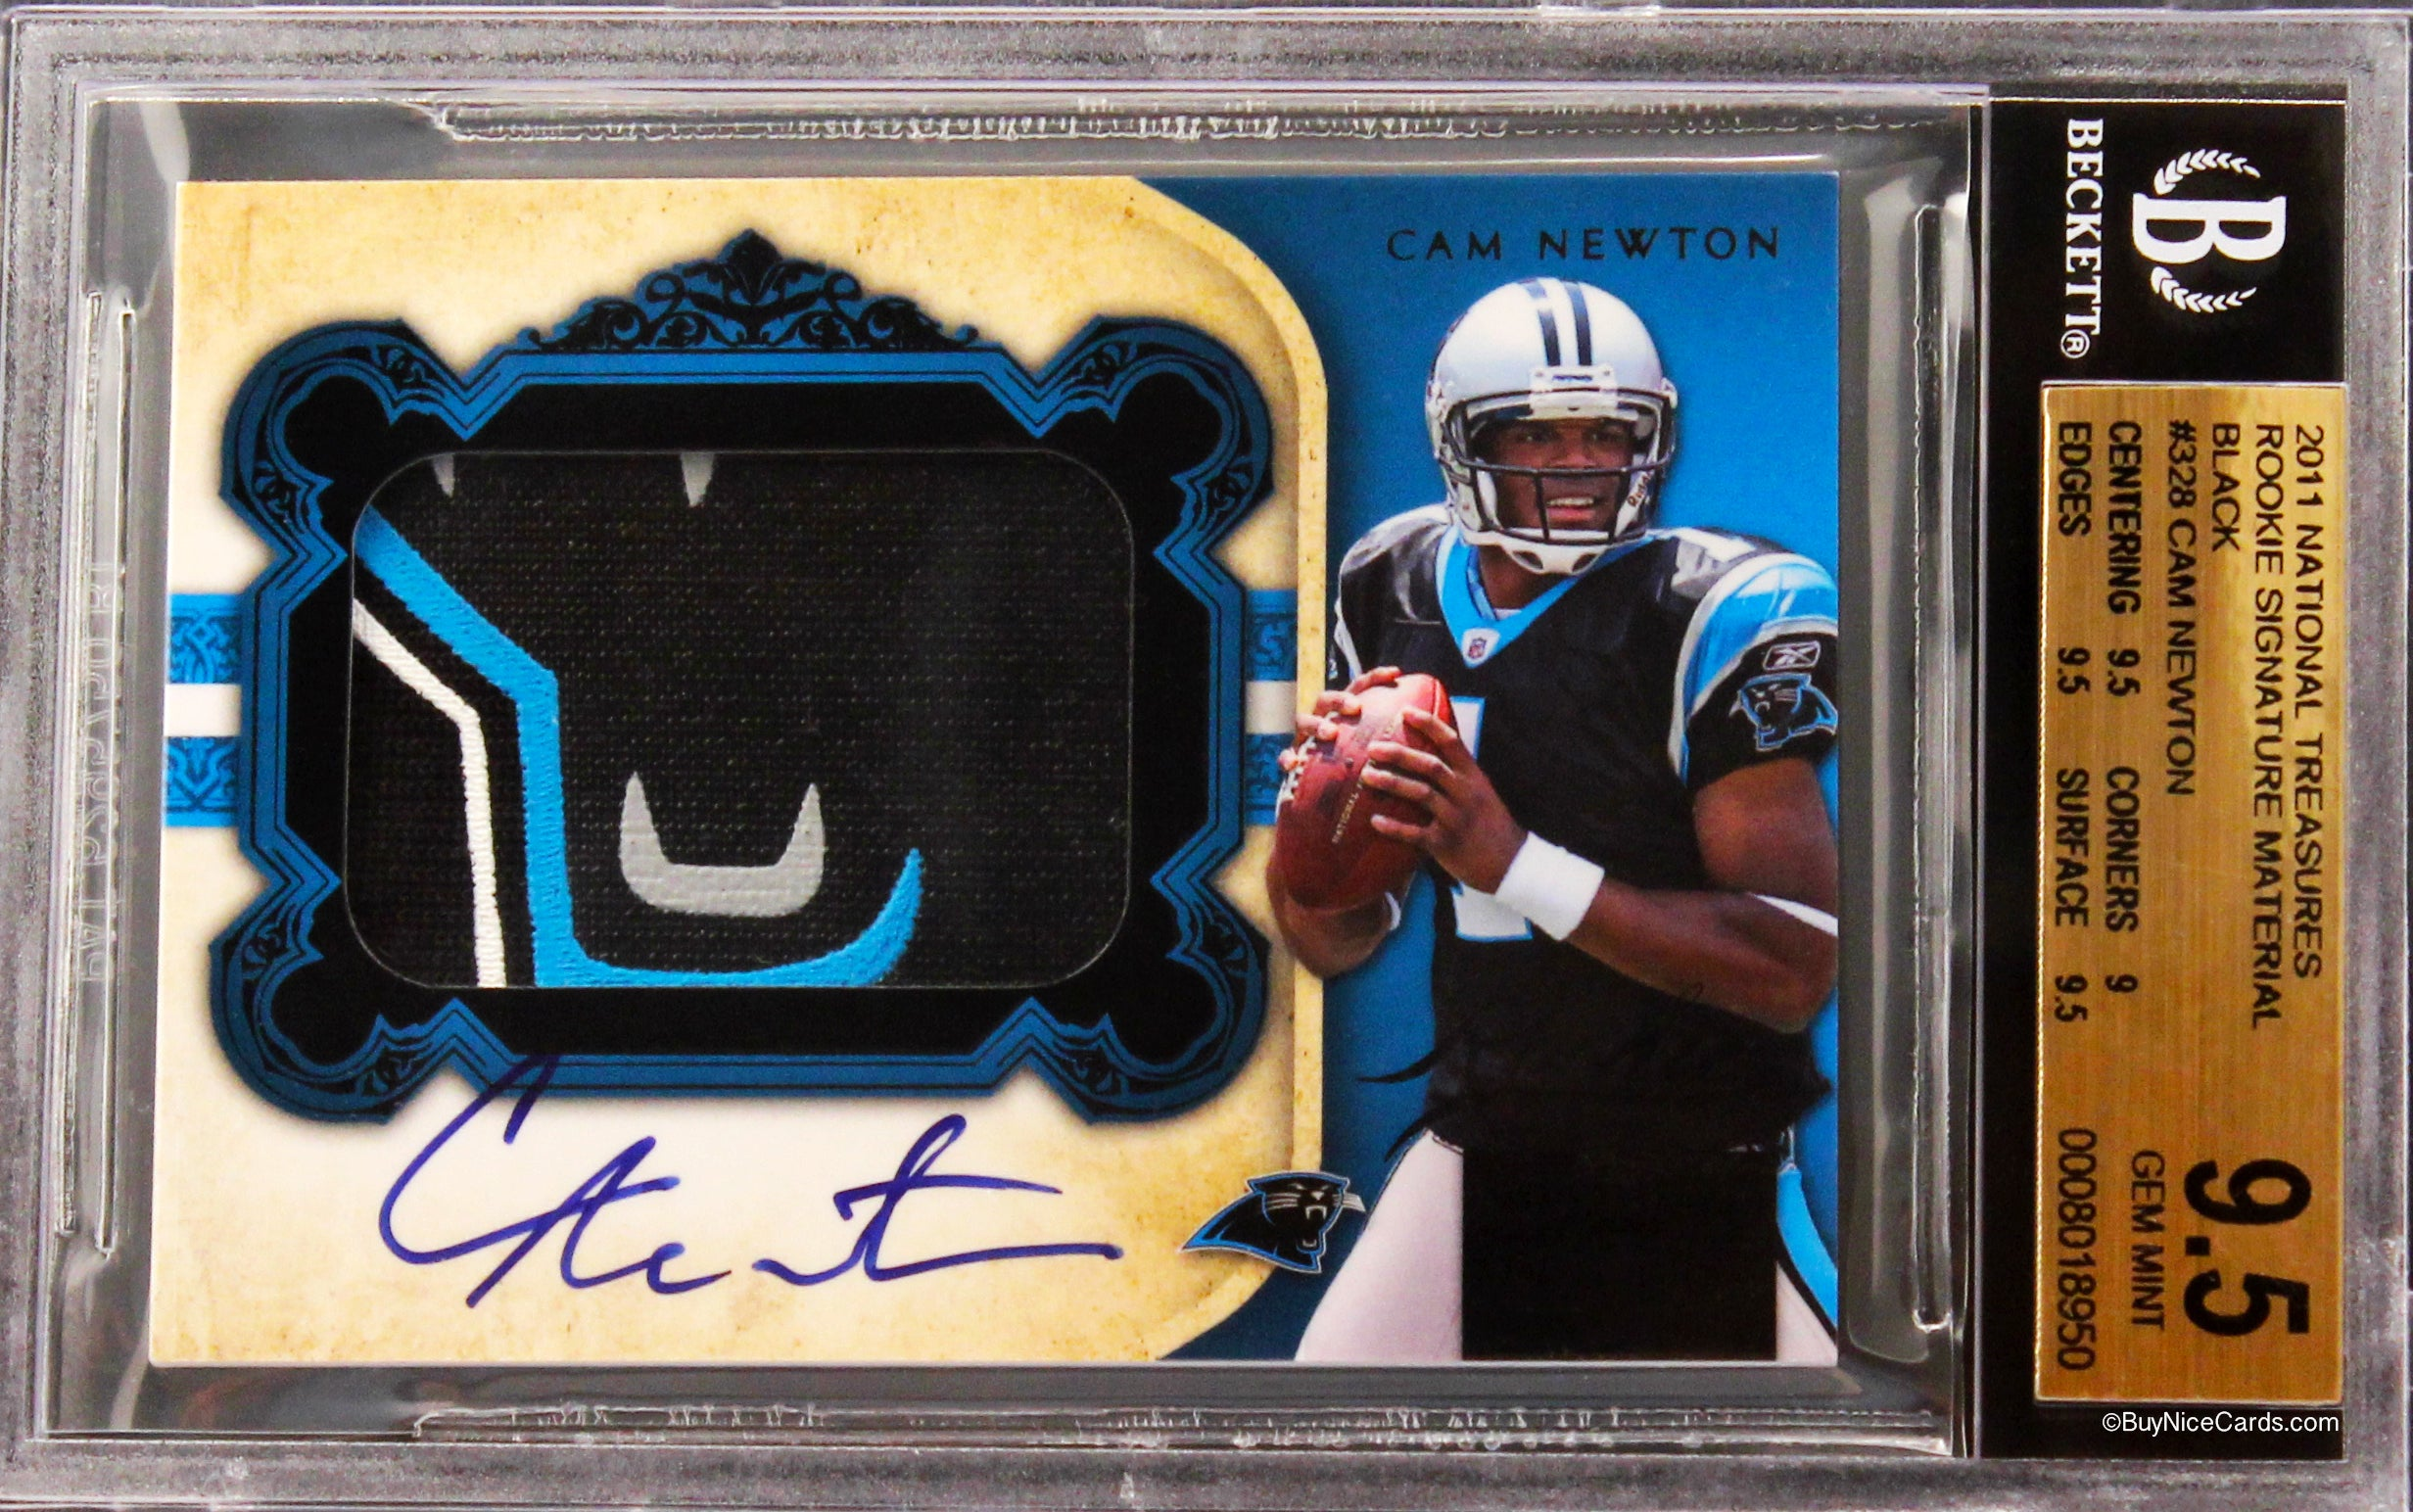 2011 Cam Newton National Treasures Black Rc Rookie Patch Auto 2525